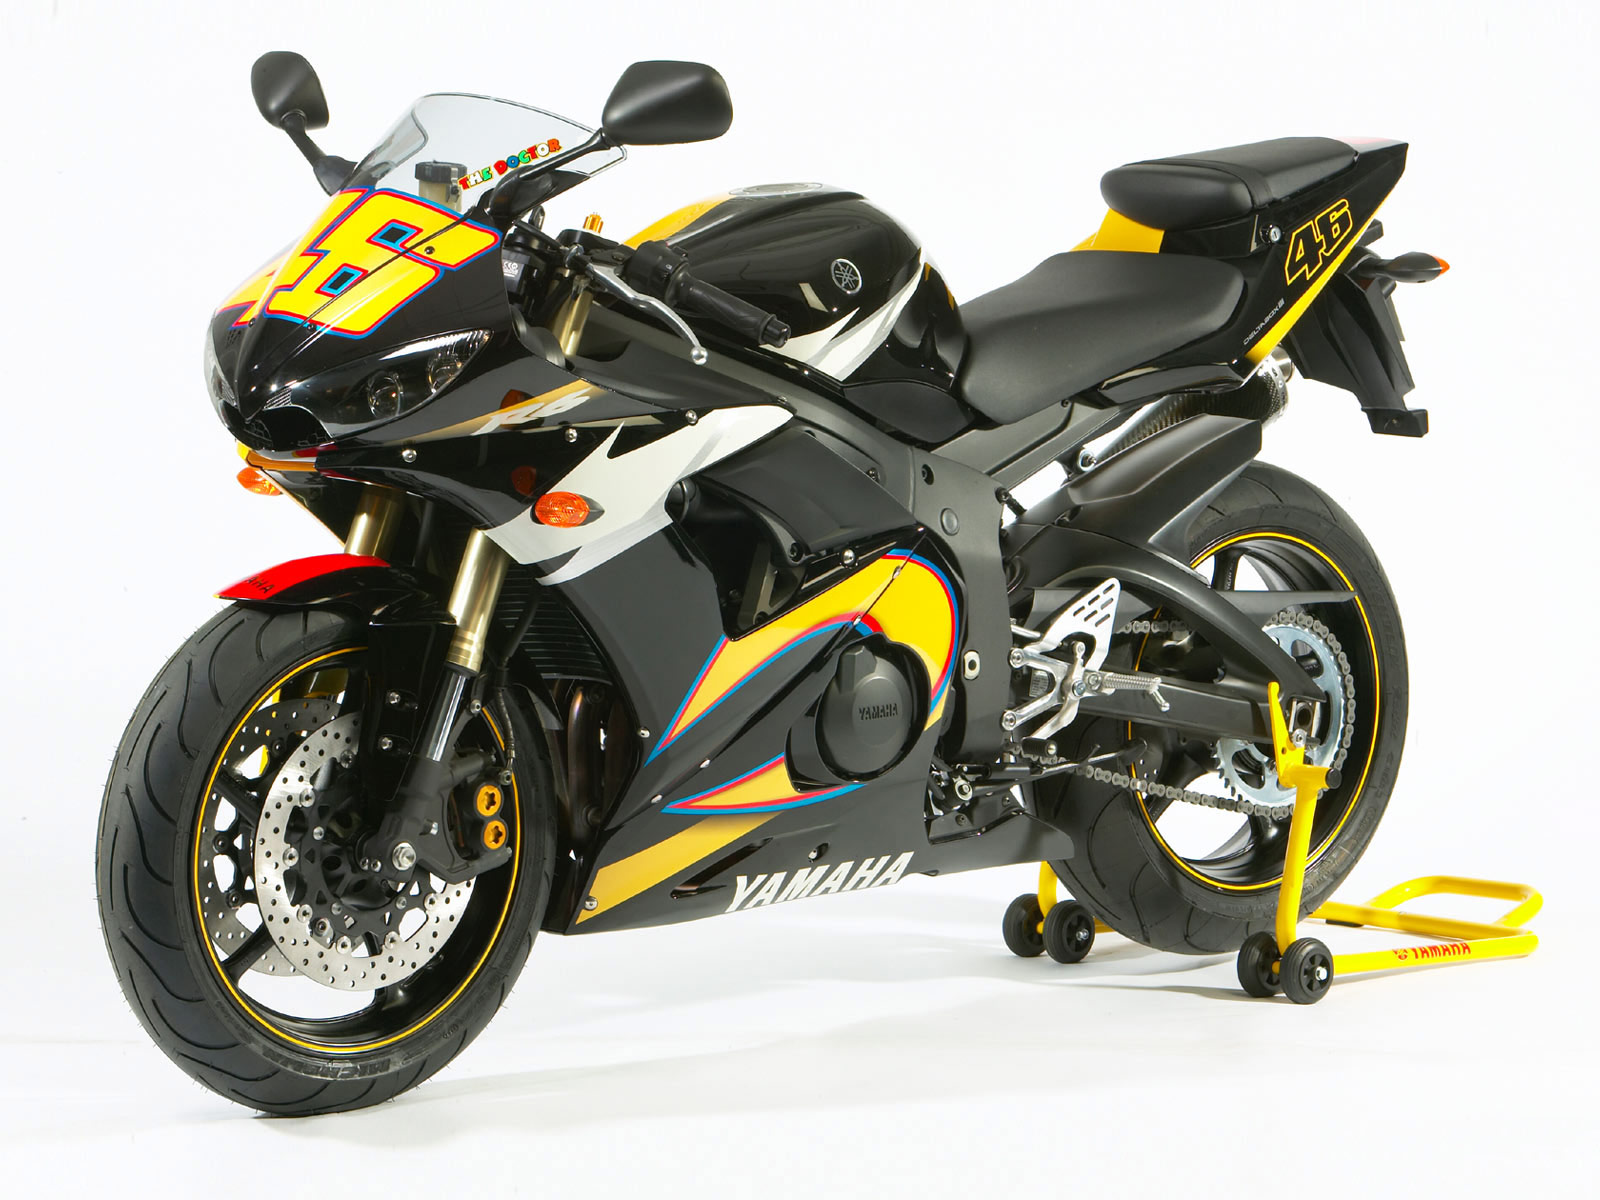 2005 yamaha yzf r6 r46 motorcycle pictures. Black Bedroom Furniture Sets. Home Design Ideas